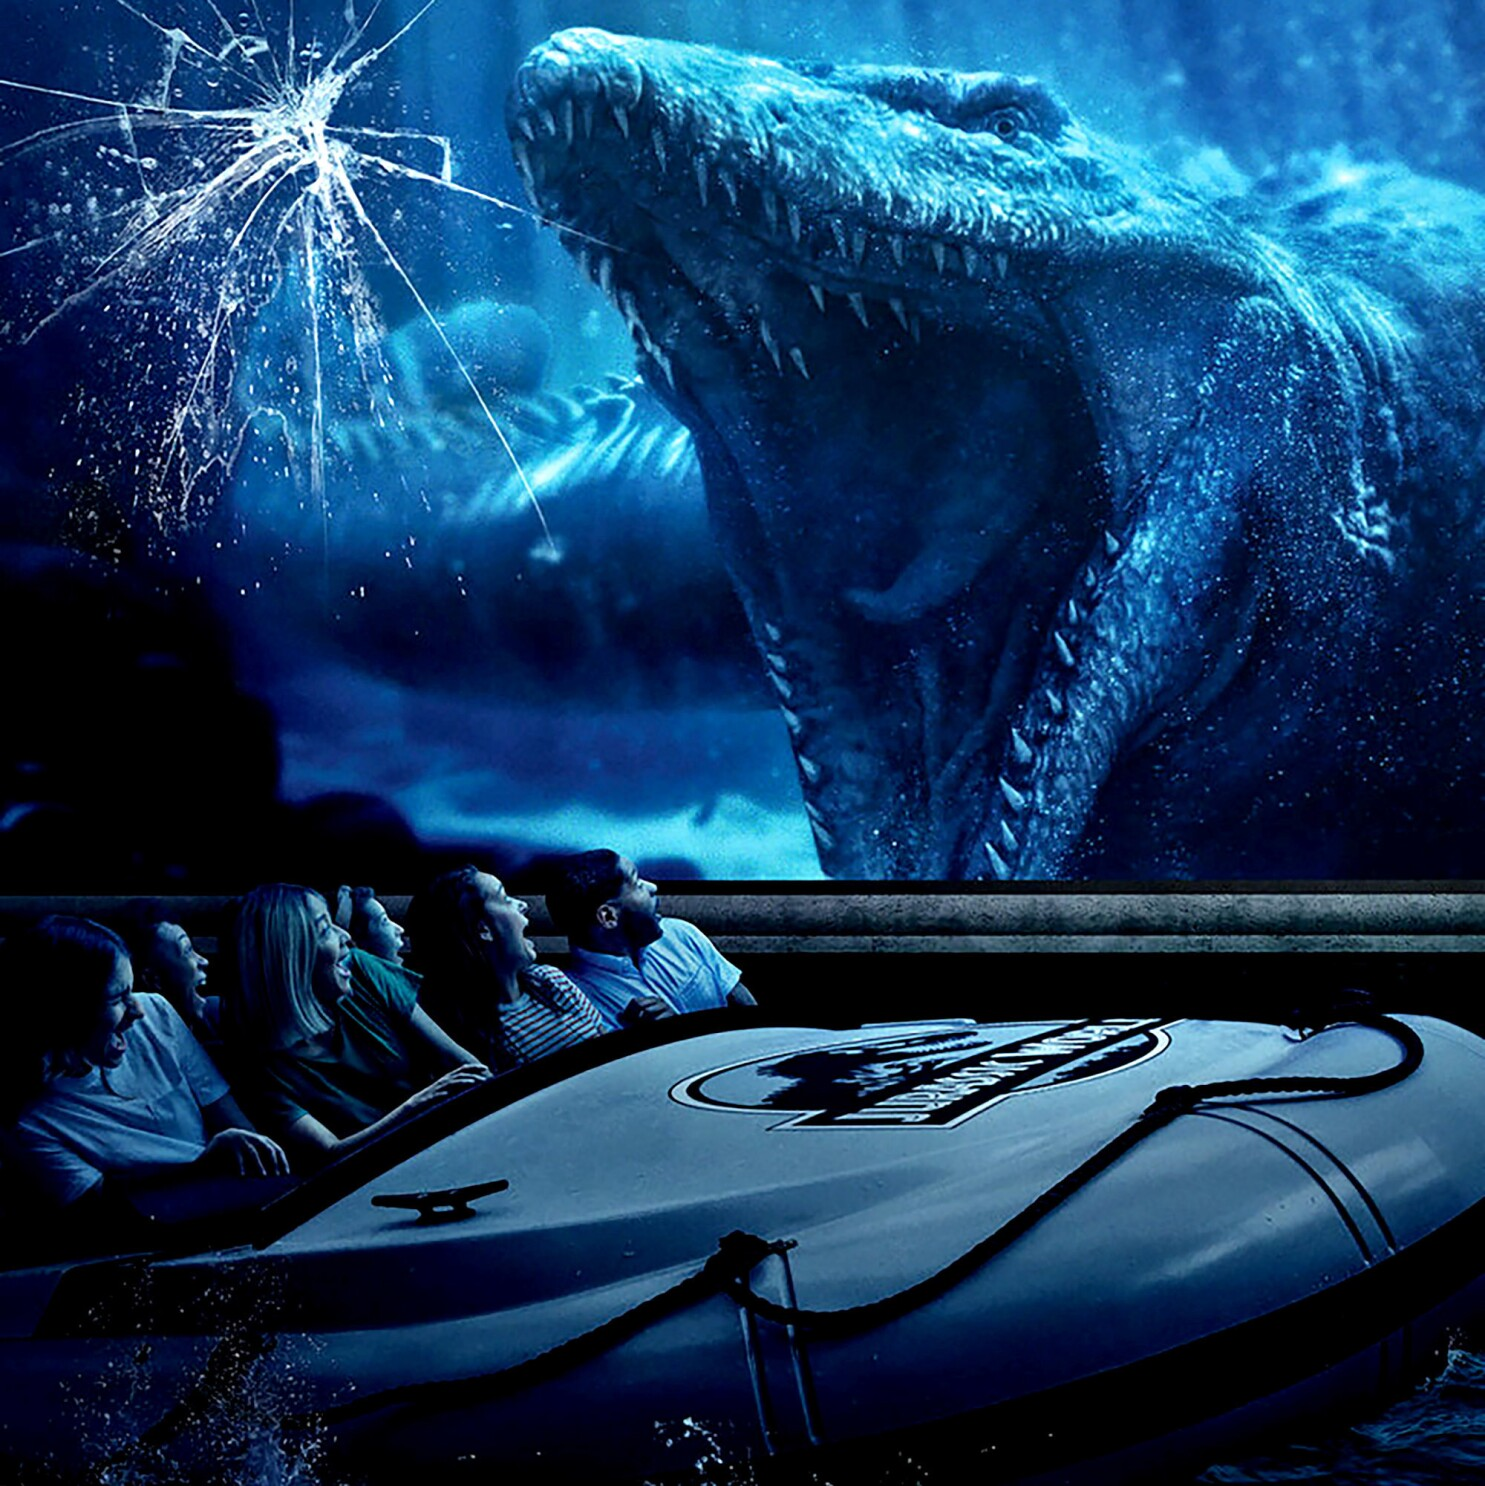 What's it like to ride the new Jurassic World ride at Universal Studios? - Los Angeles Times